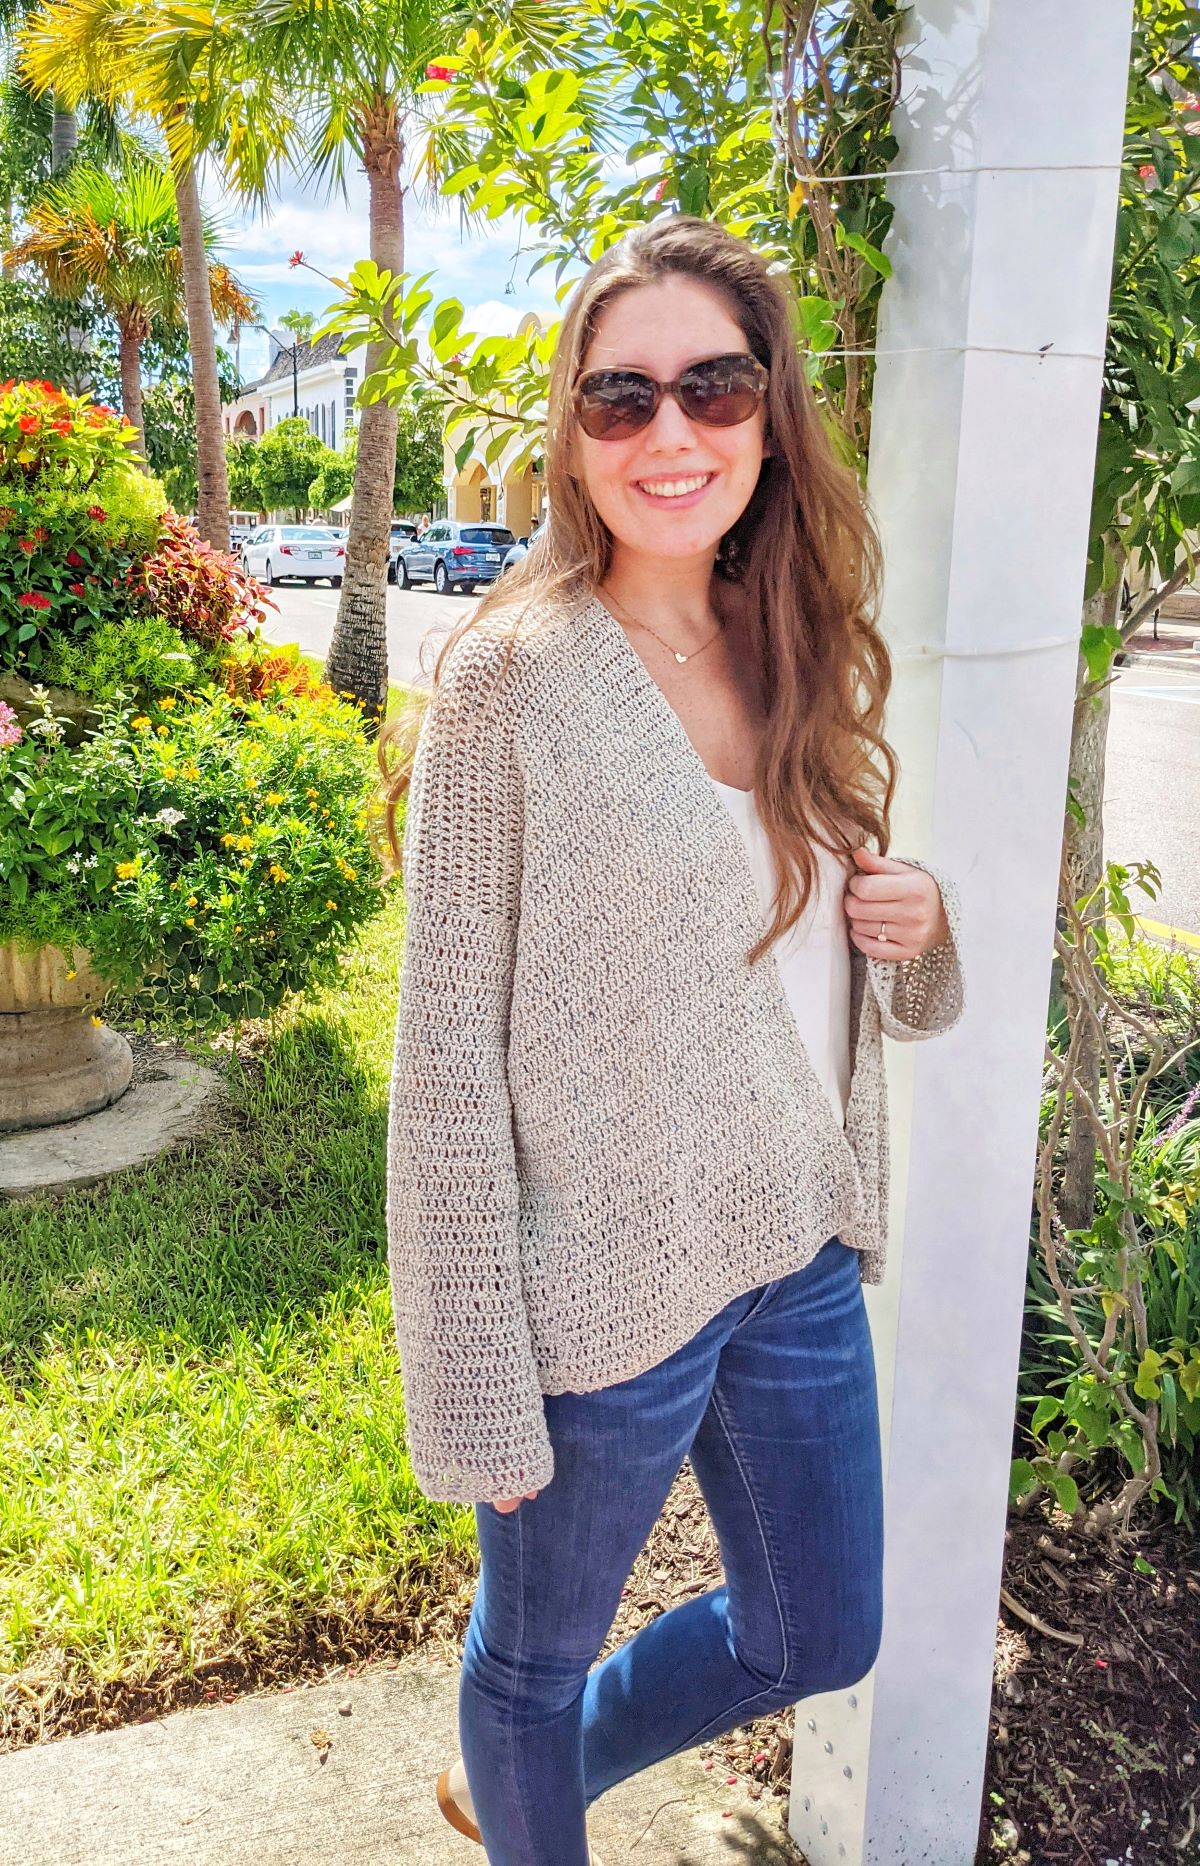 model is wearing a long crochet cardigan with jeans and a white t-shirt behind a grassy surrounding